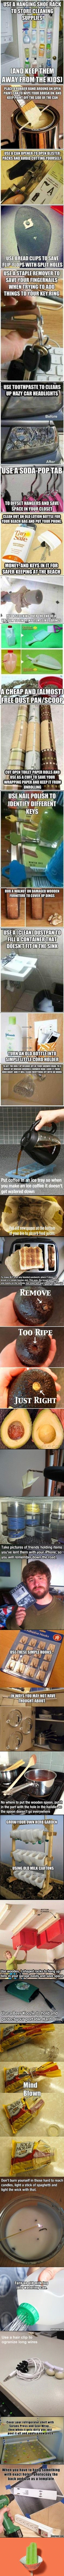 easy life hacks  Grouped image by http://pinthemall.net